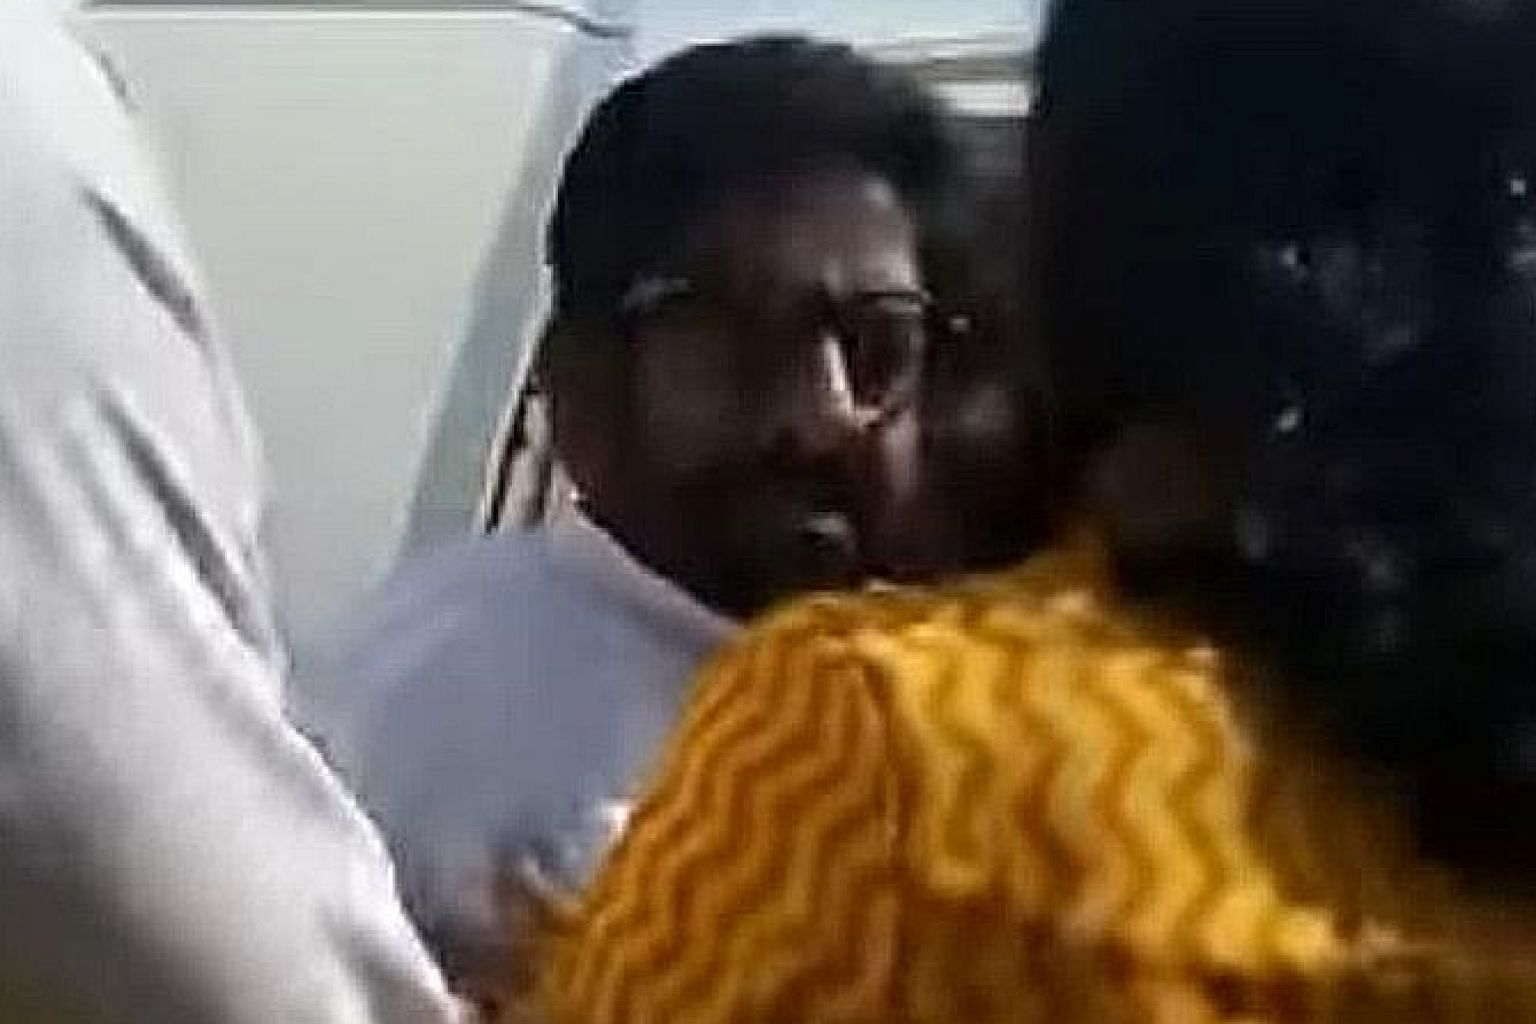 Indian MP Ravindra Gaikwad claimed that he lost his cool because the airline employee threatened to complain to Prime Minister Modi about his refusal to disembark from the plane. He was furious because he could not get a business-class seat on an eco